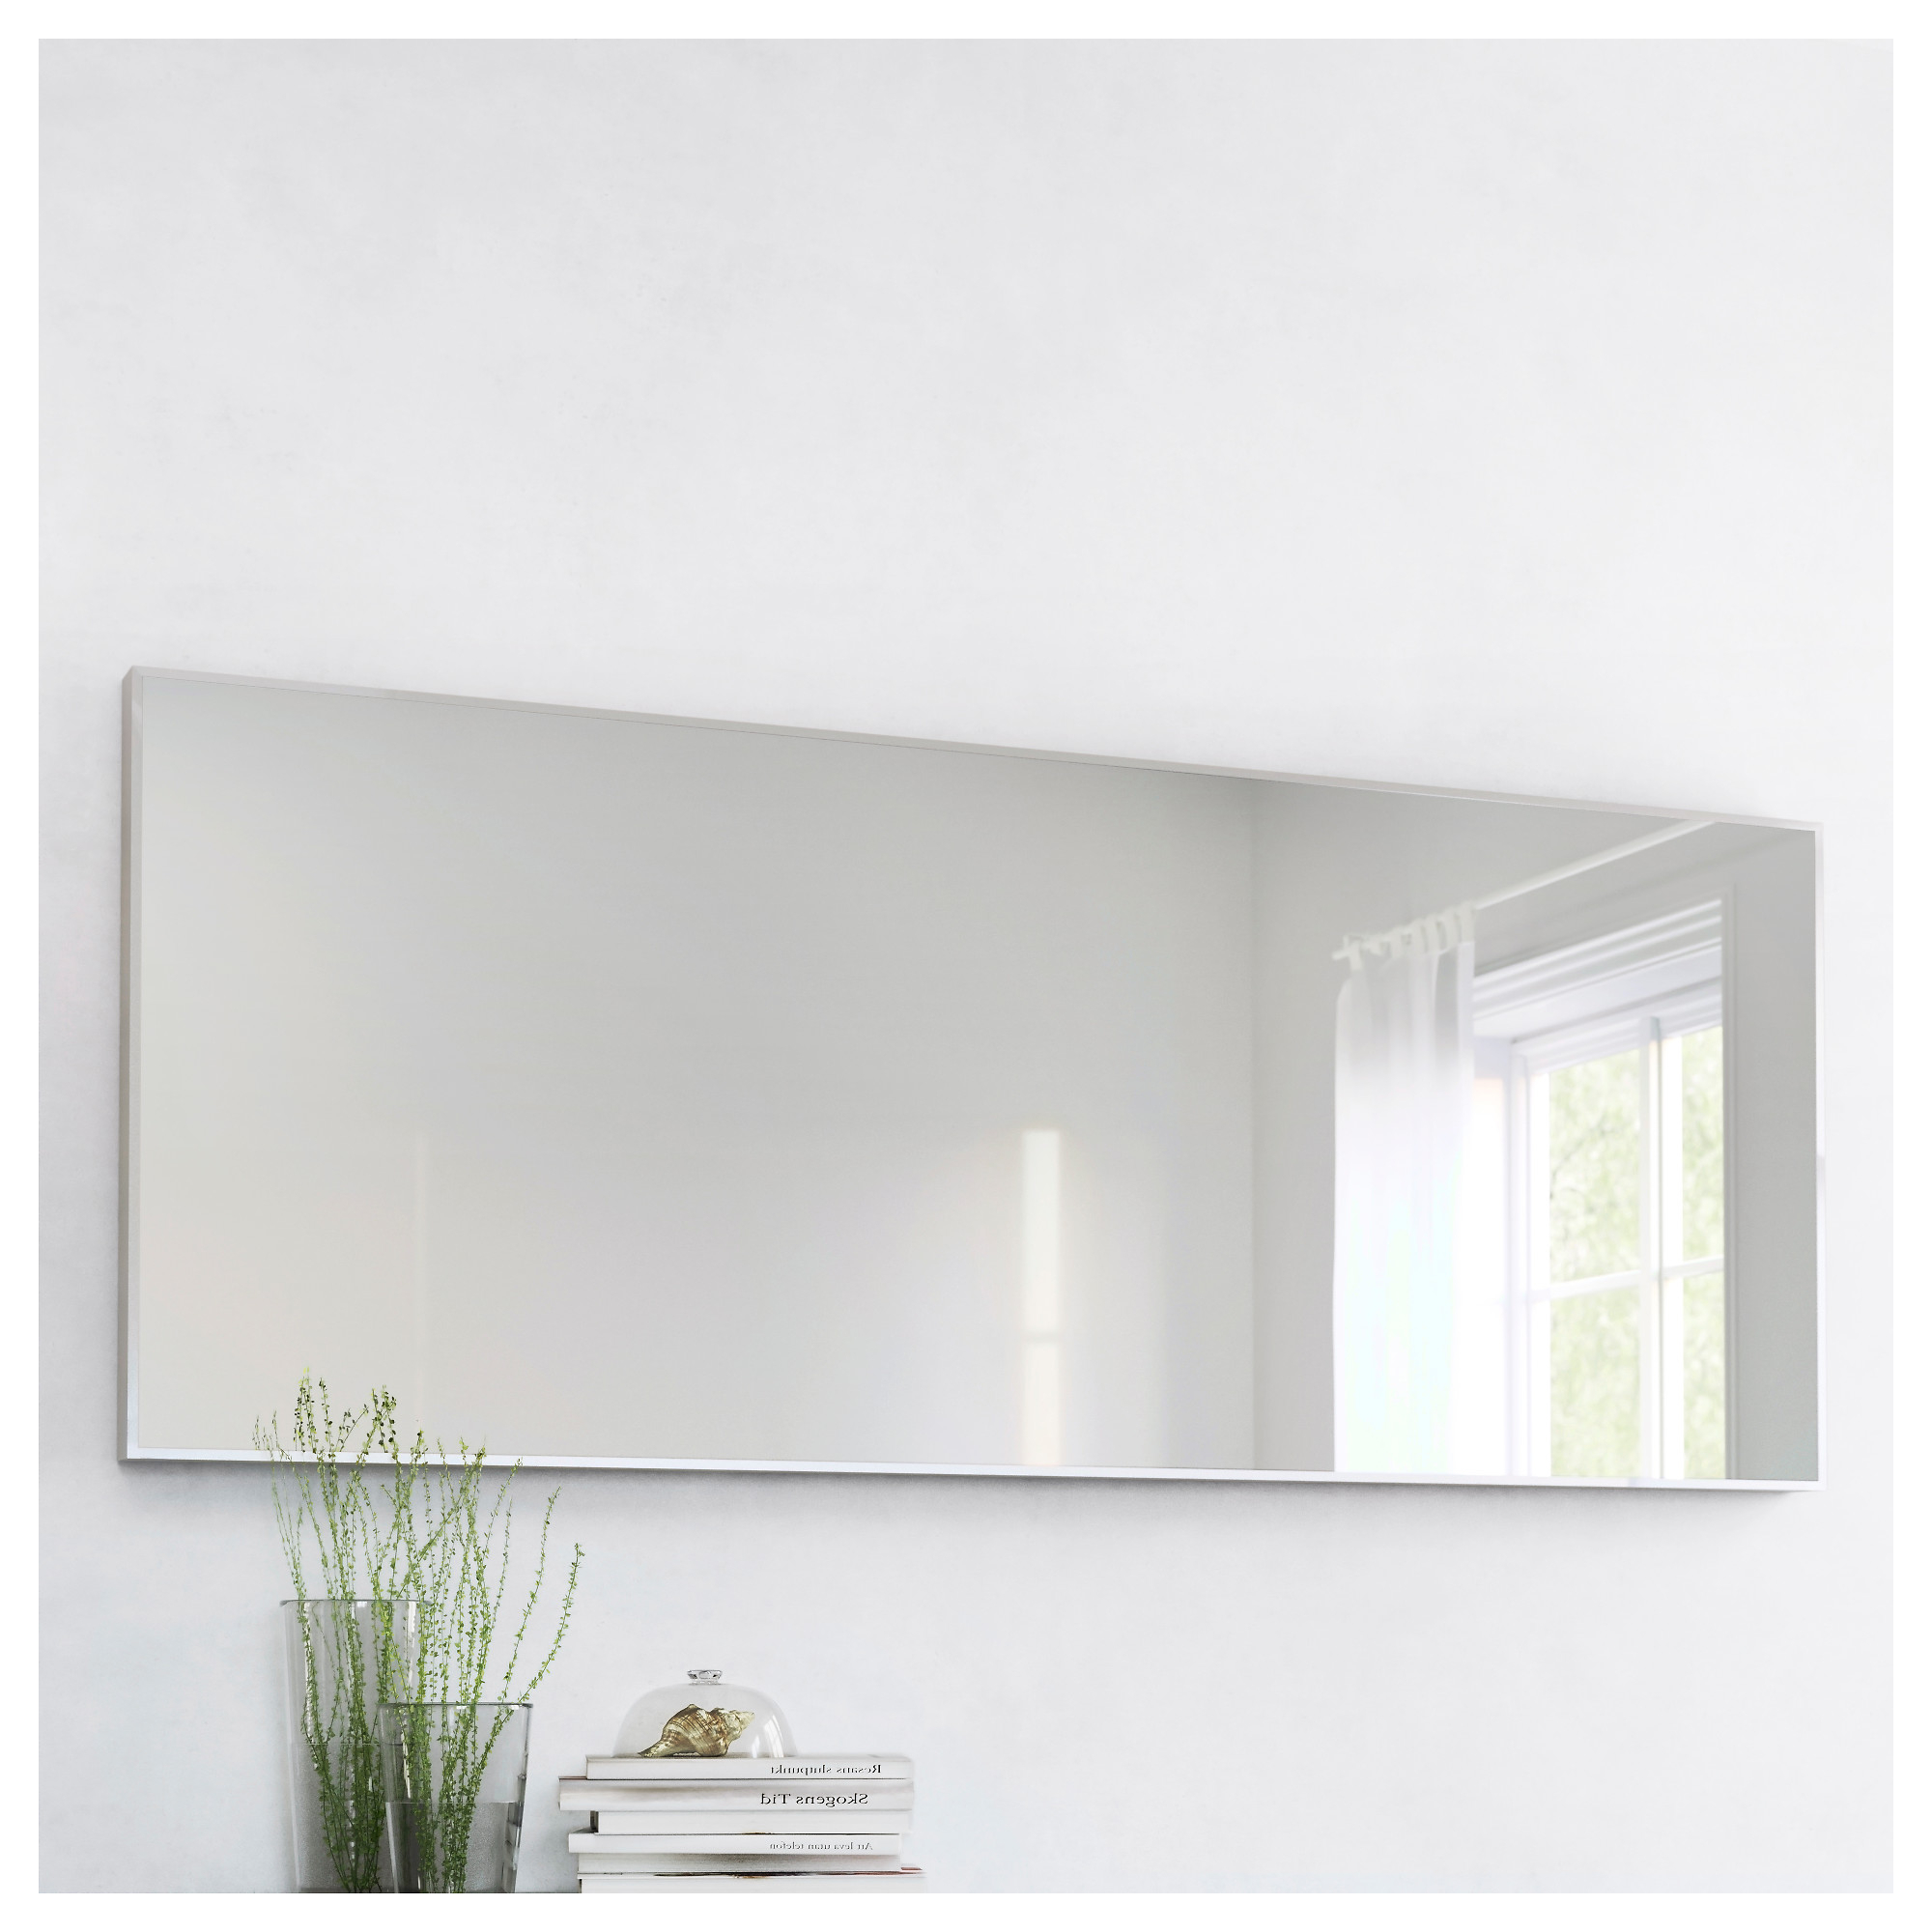 Ikea Wall Mirrors Inside Most Popular Ikea Hong Kong – Shop For Furniture, Lighting, Home Accessories & More (Gallery 6 of 20)